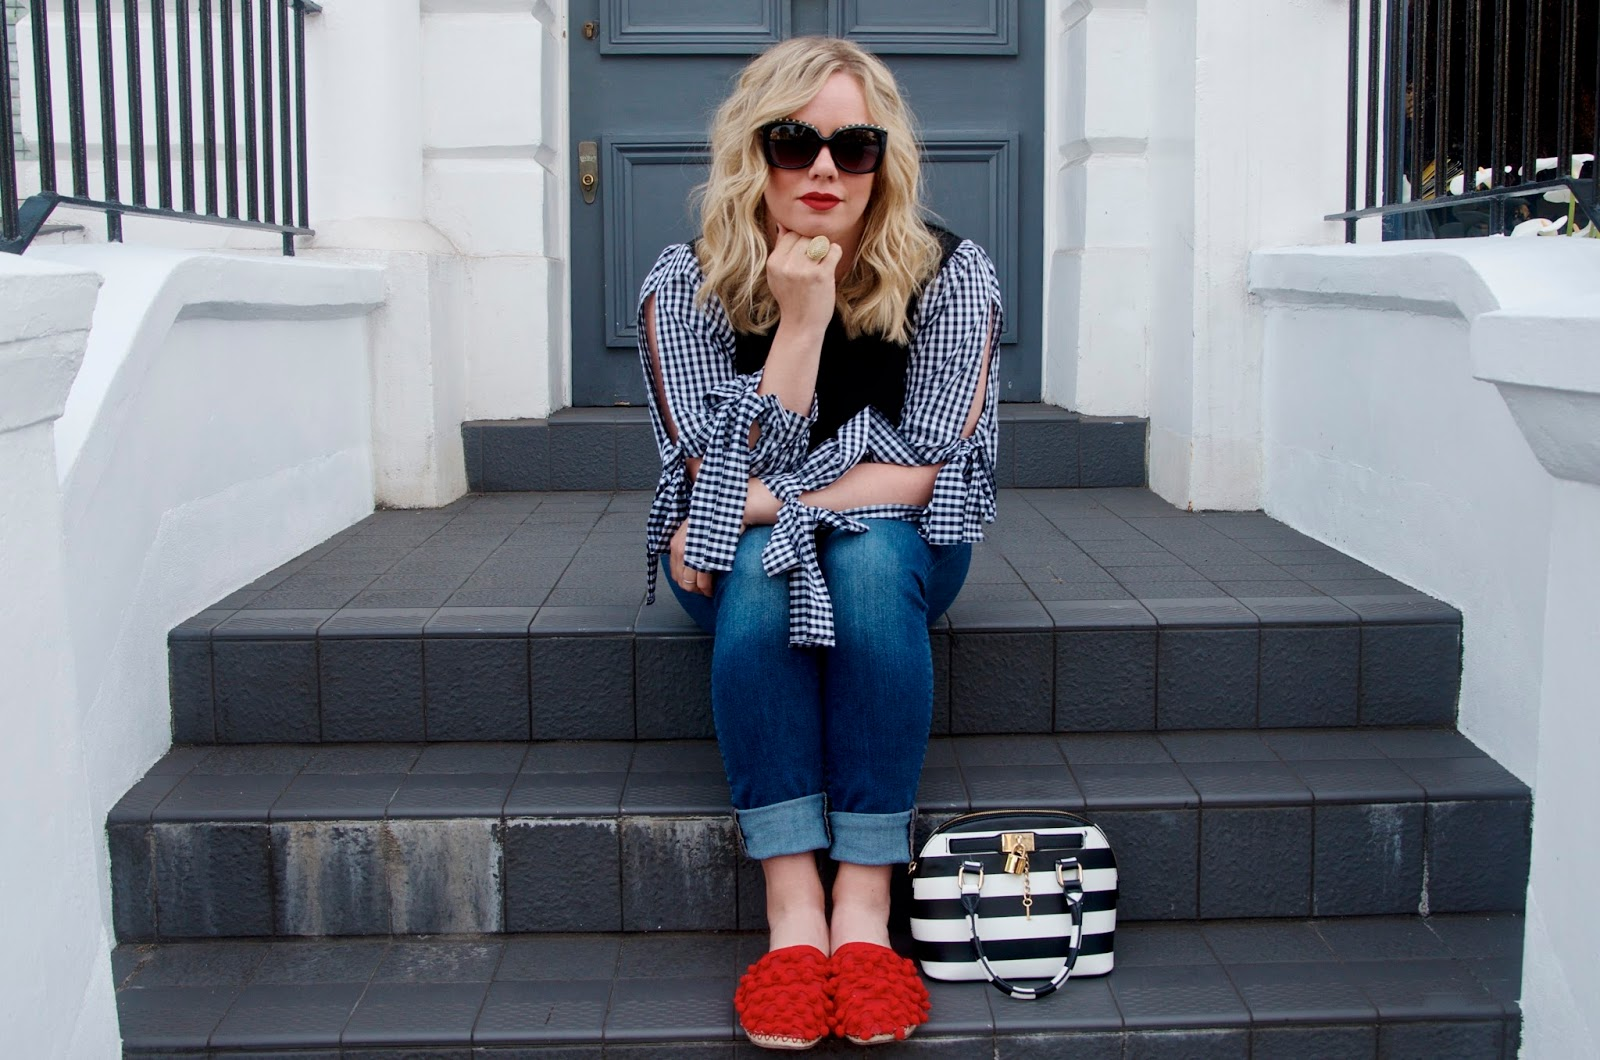 Gingham top, striped bag and red shoes